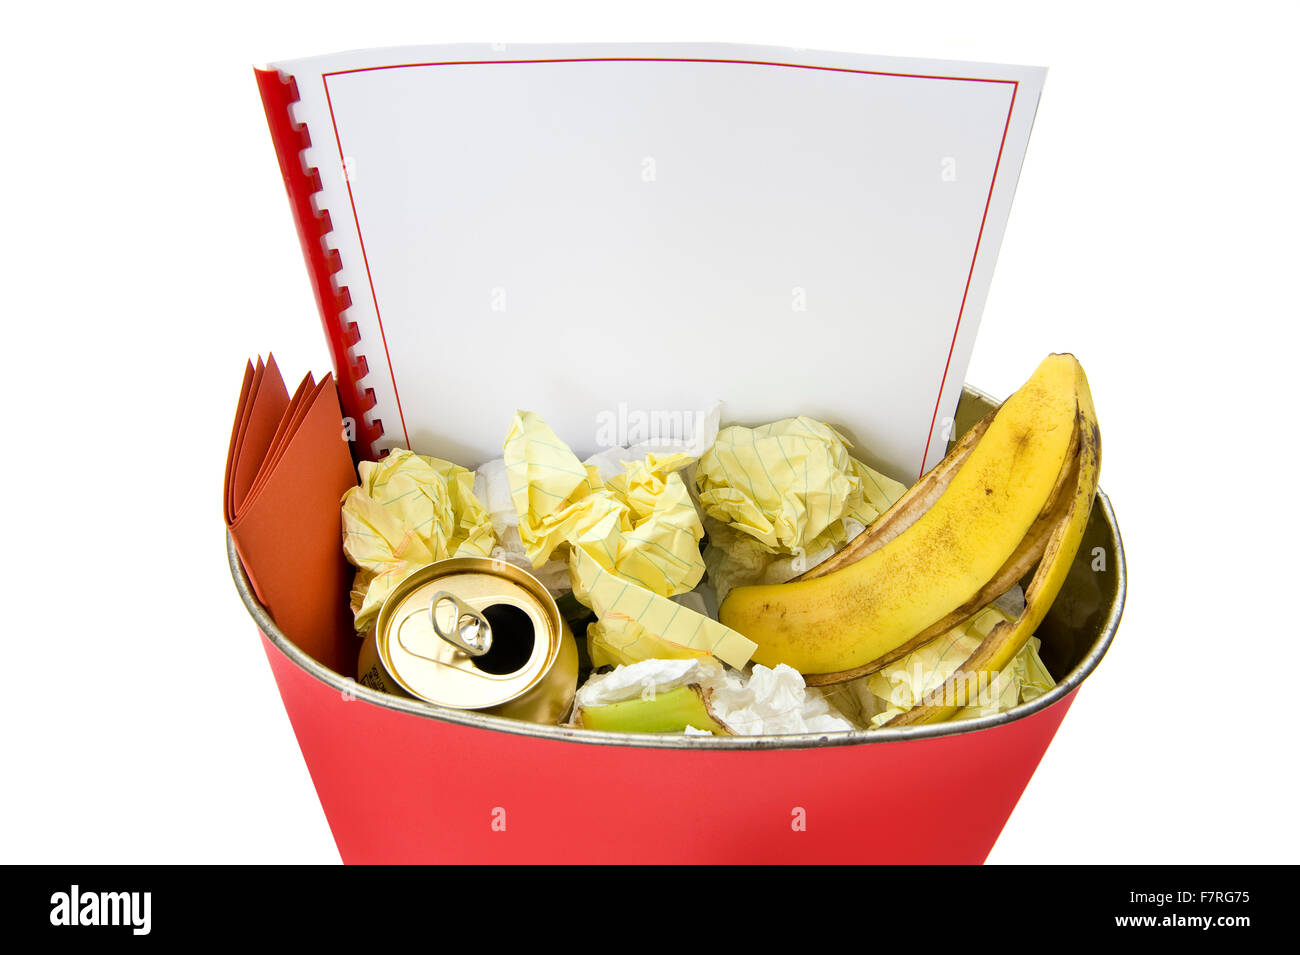 Blank Booklet In Trash Can Stock Photo